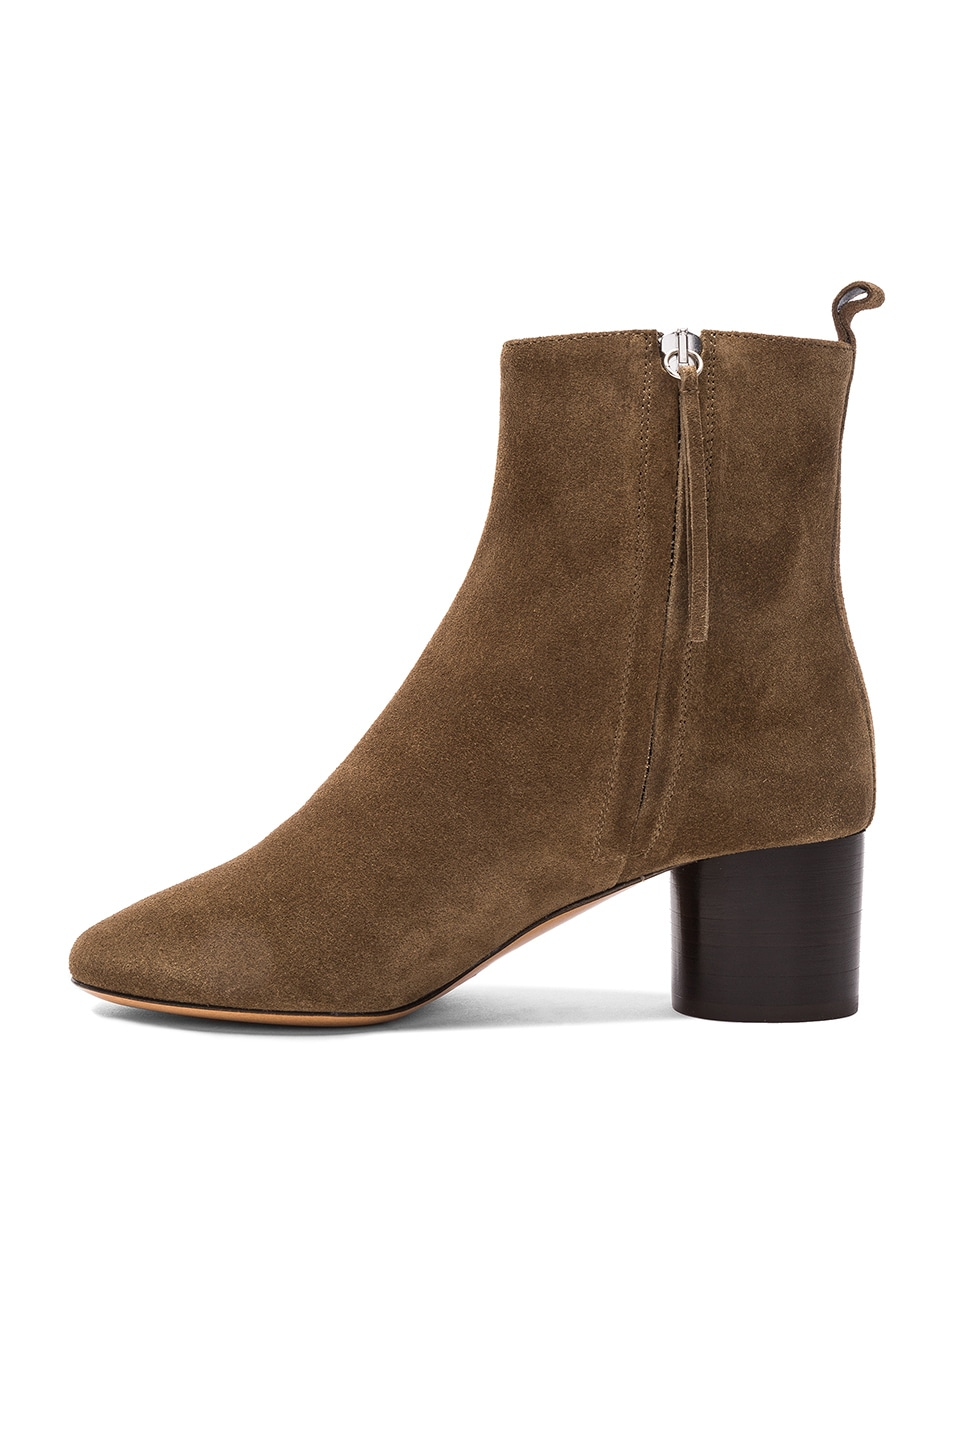 Image 5 of Isabel Marant Etoile Suede Deyissa Summer Velvet Boots in Brown